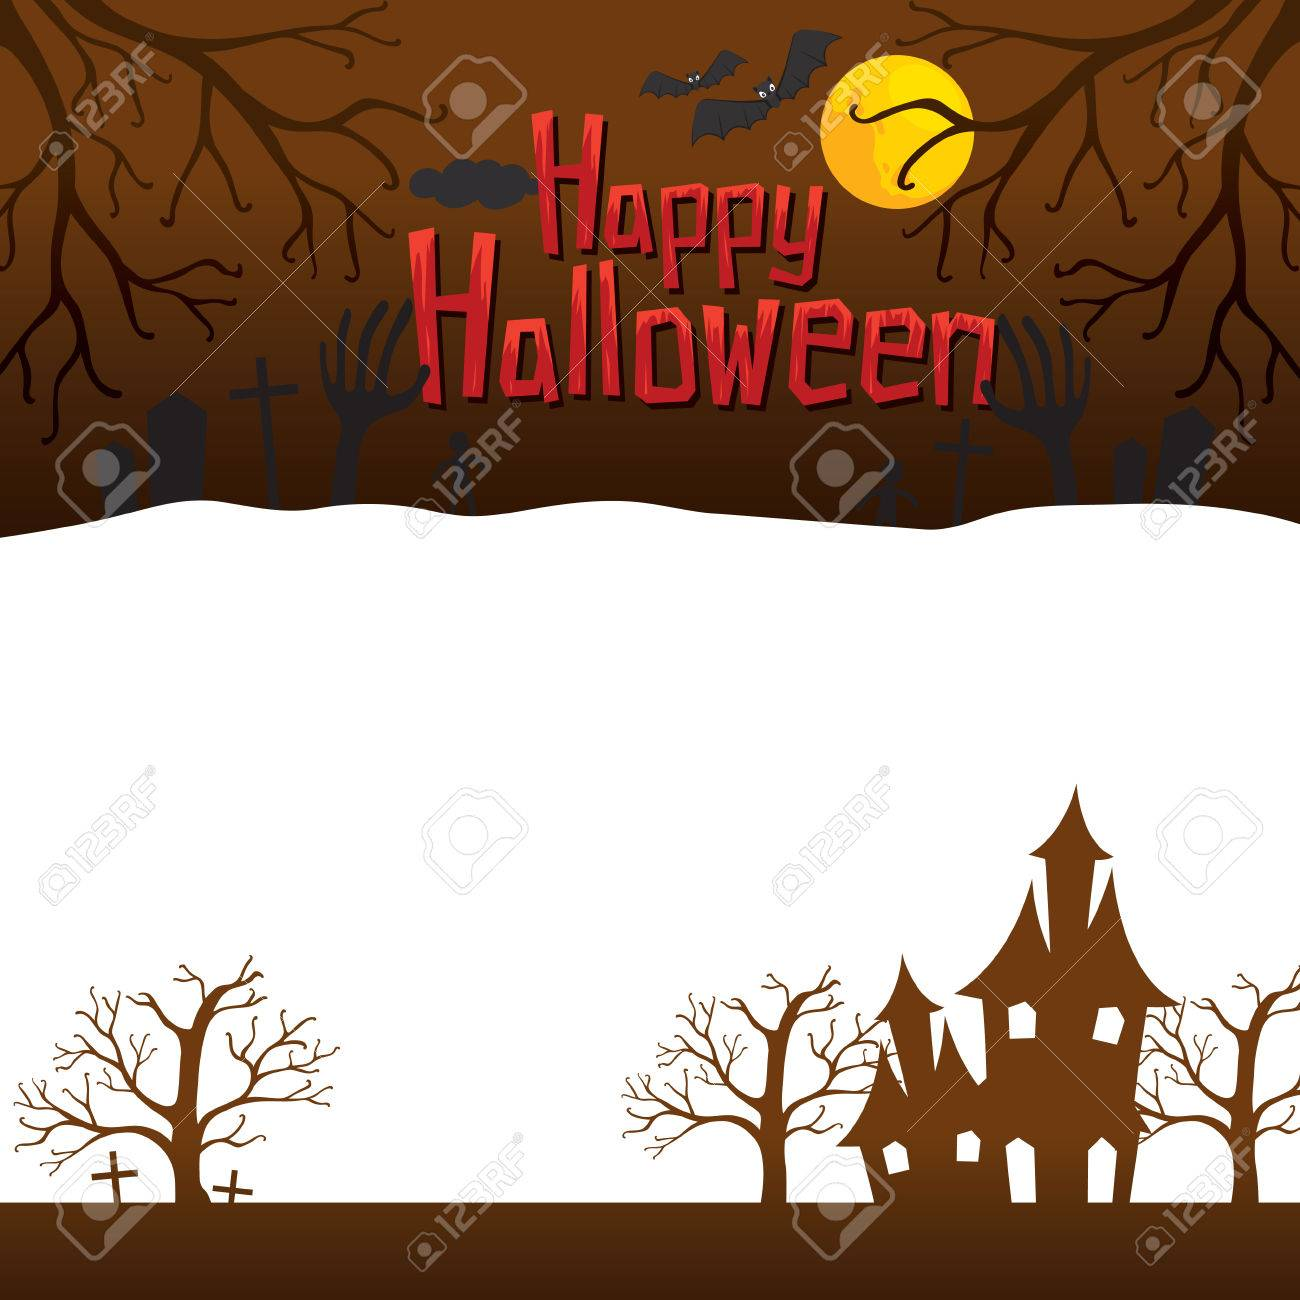 Happy Halloween Background, Mystery, Holiday, Culture, October, Decoration,  Fantasy,